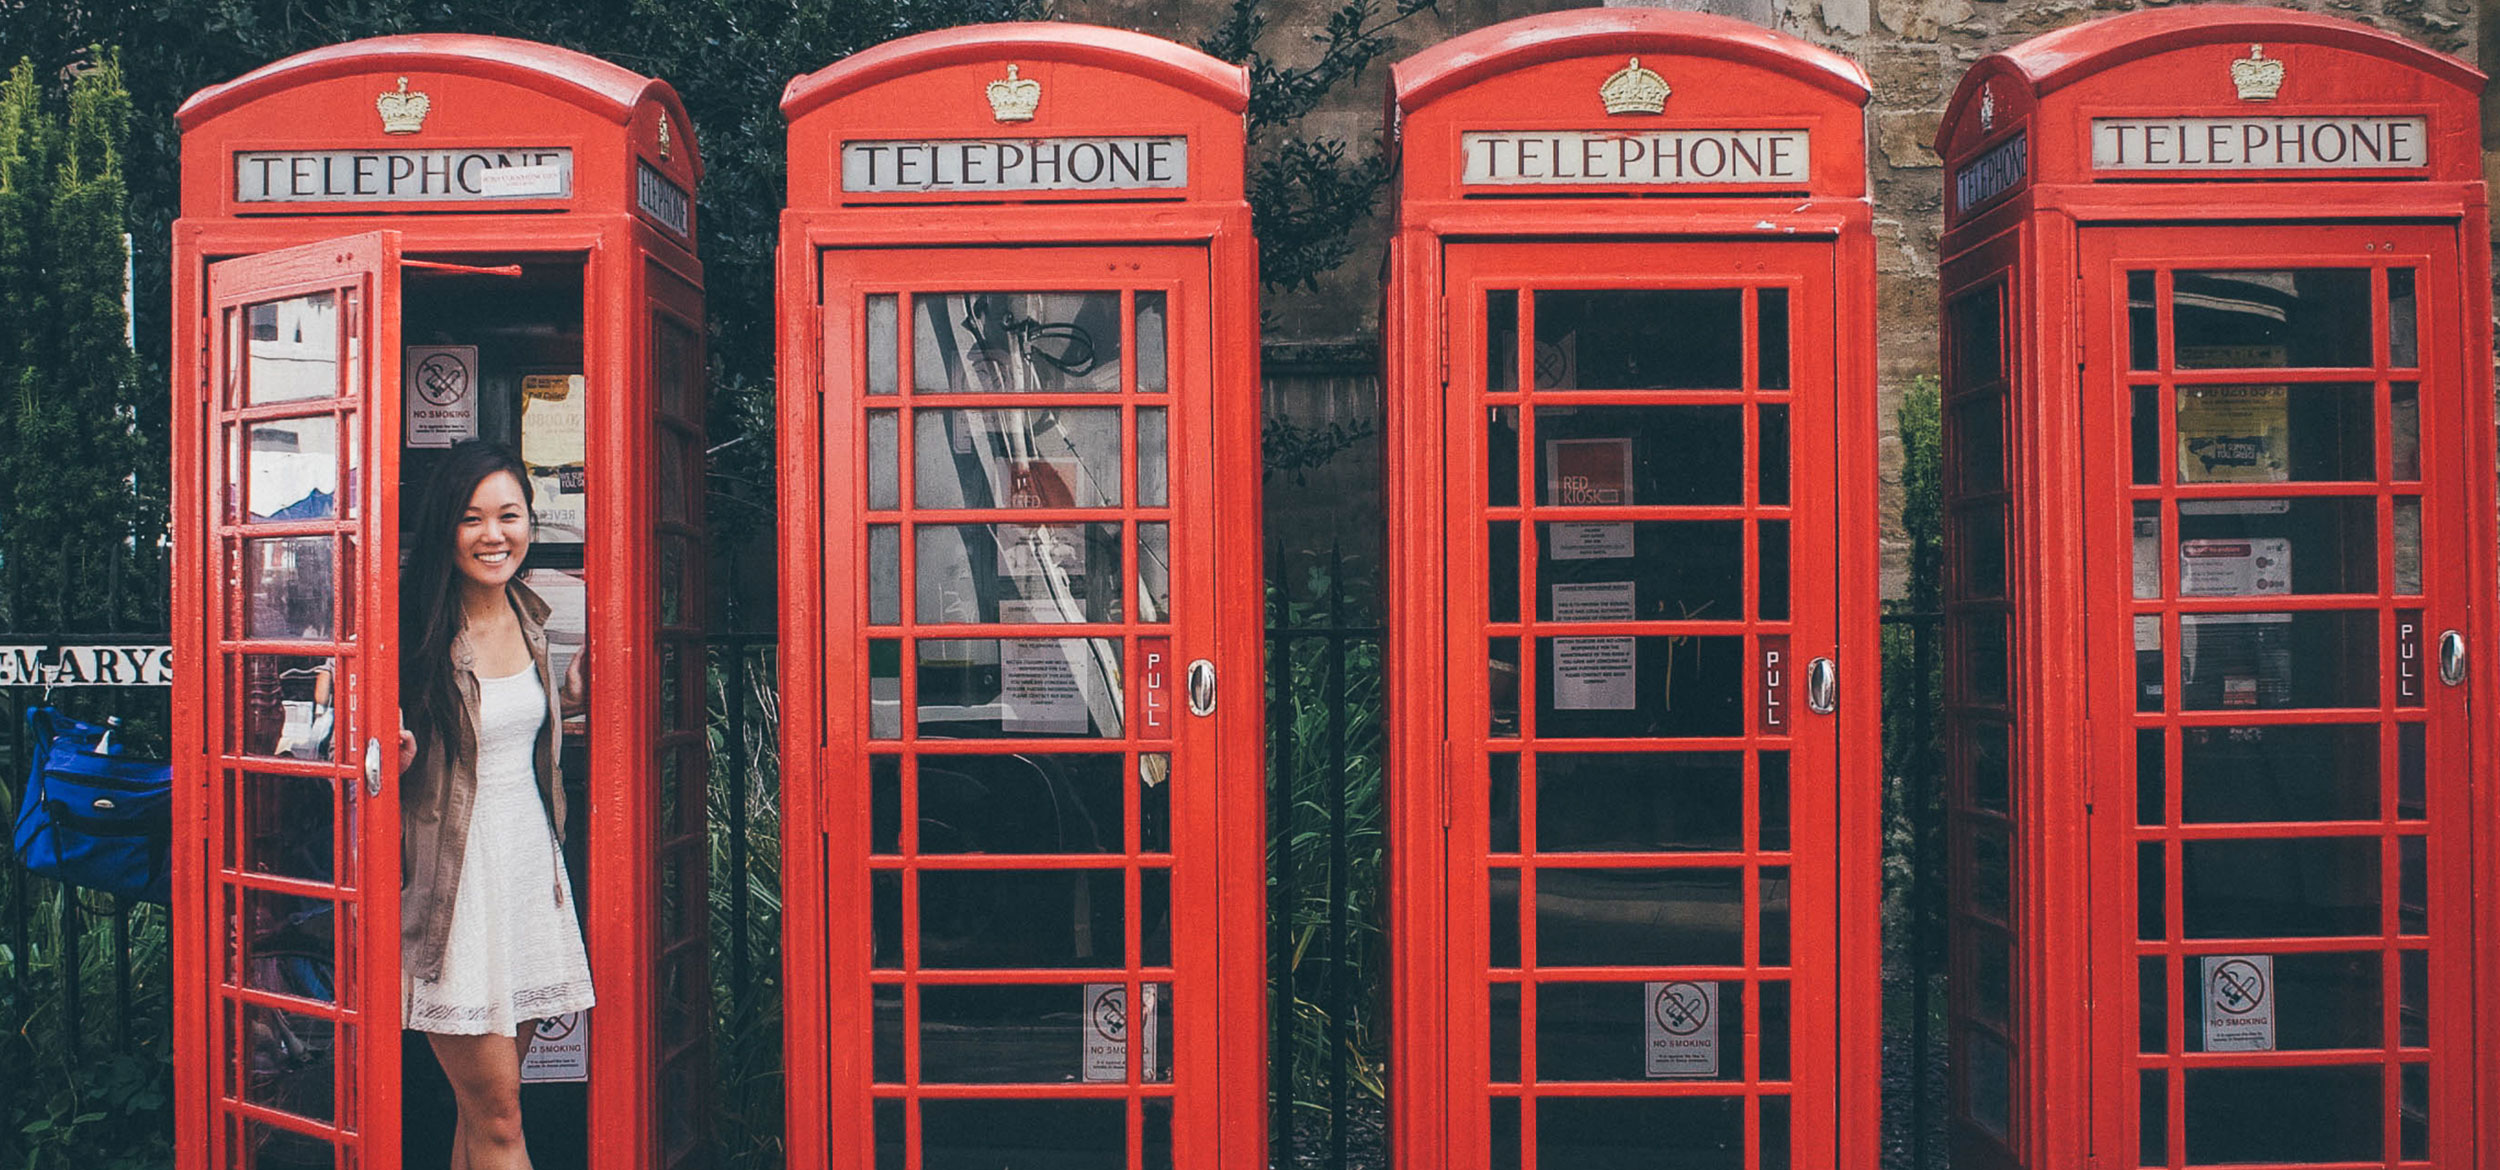 Student Jacqueline Woo from UC Berkeley stands next to four red telephone booths in London, UK-England.